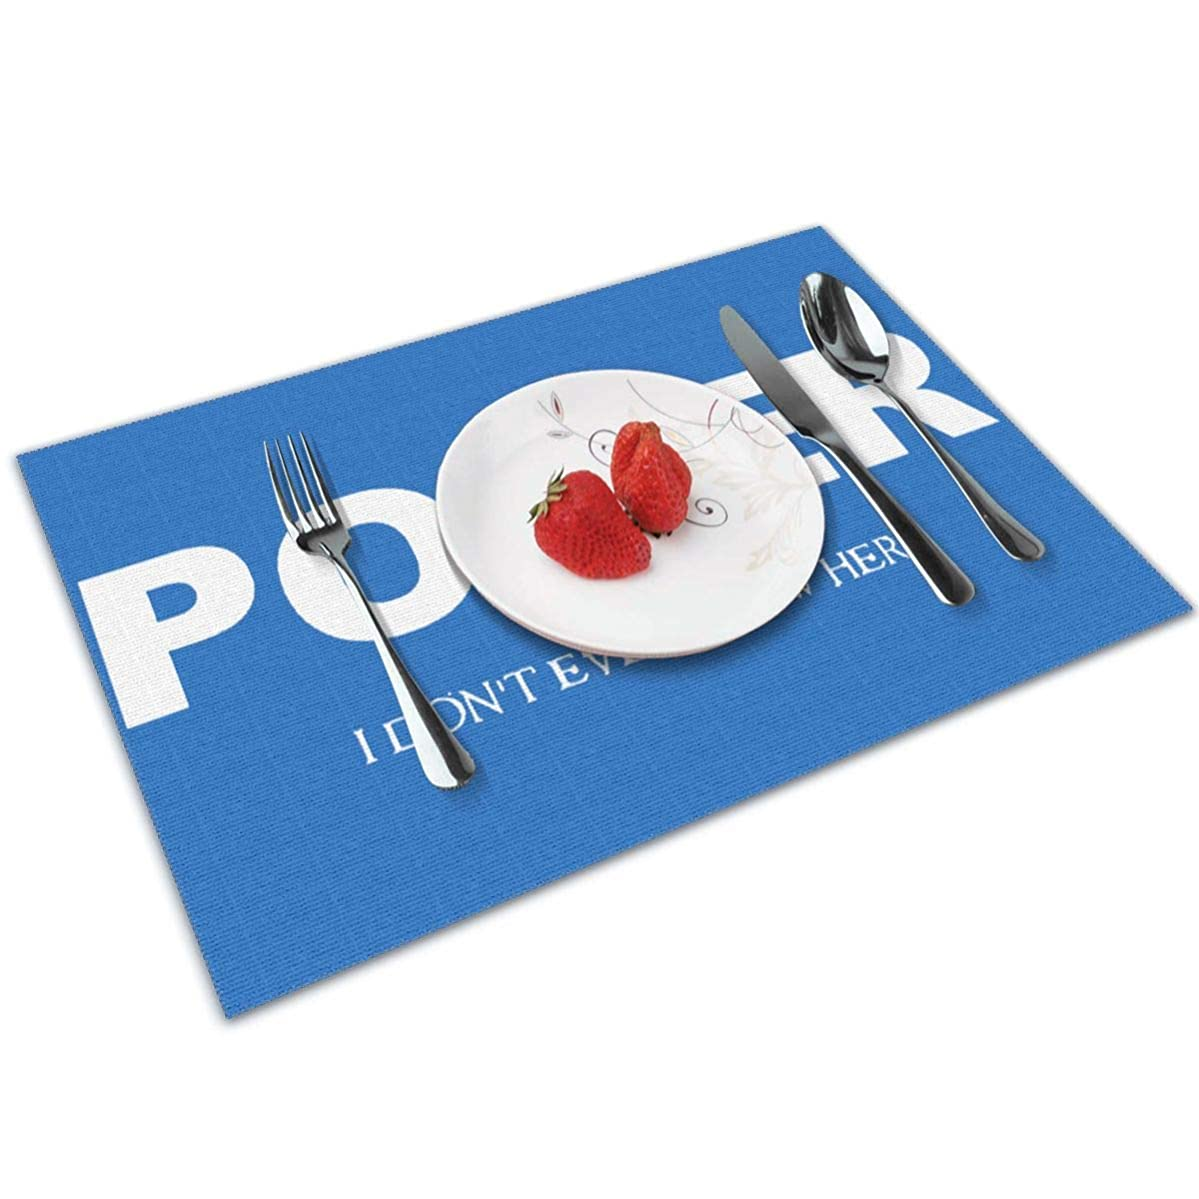 Candy Ran Poker I Don't Ever Know Her Indoor/Outdoor Placemats/Place Mats/Table Mats Set of 4, Kitchen Tablemats for Dining Table, Non-Slip Washable Heat Resistant